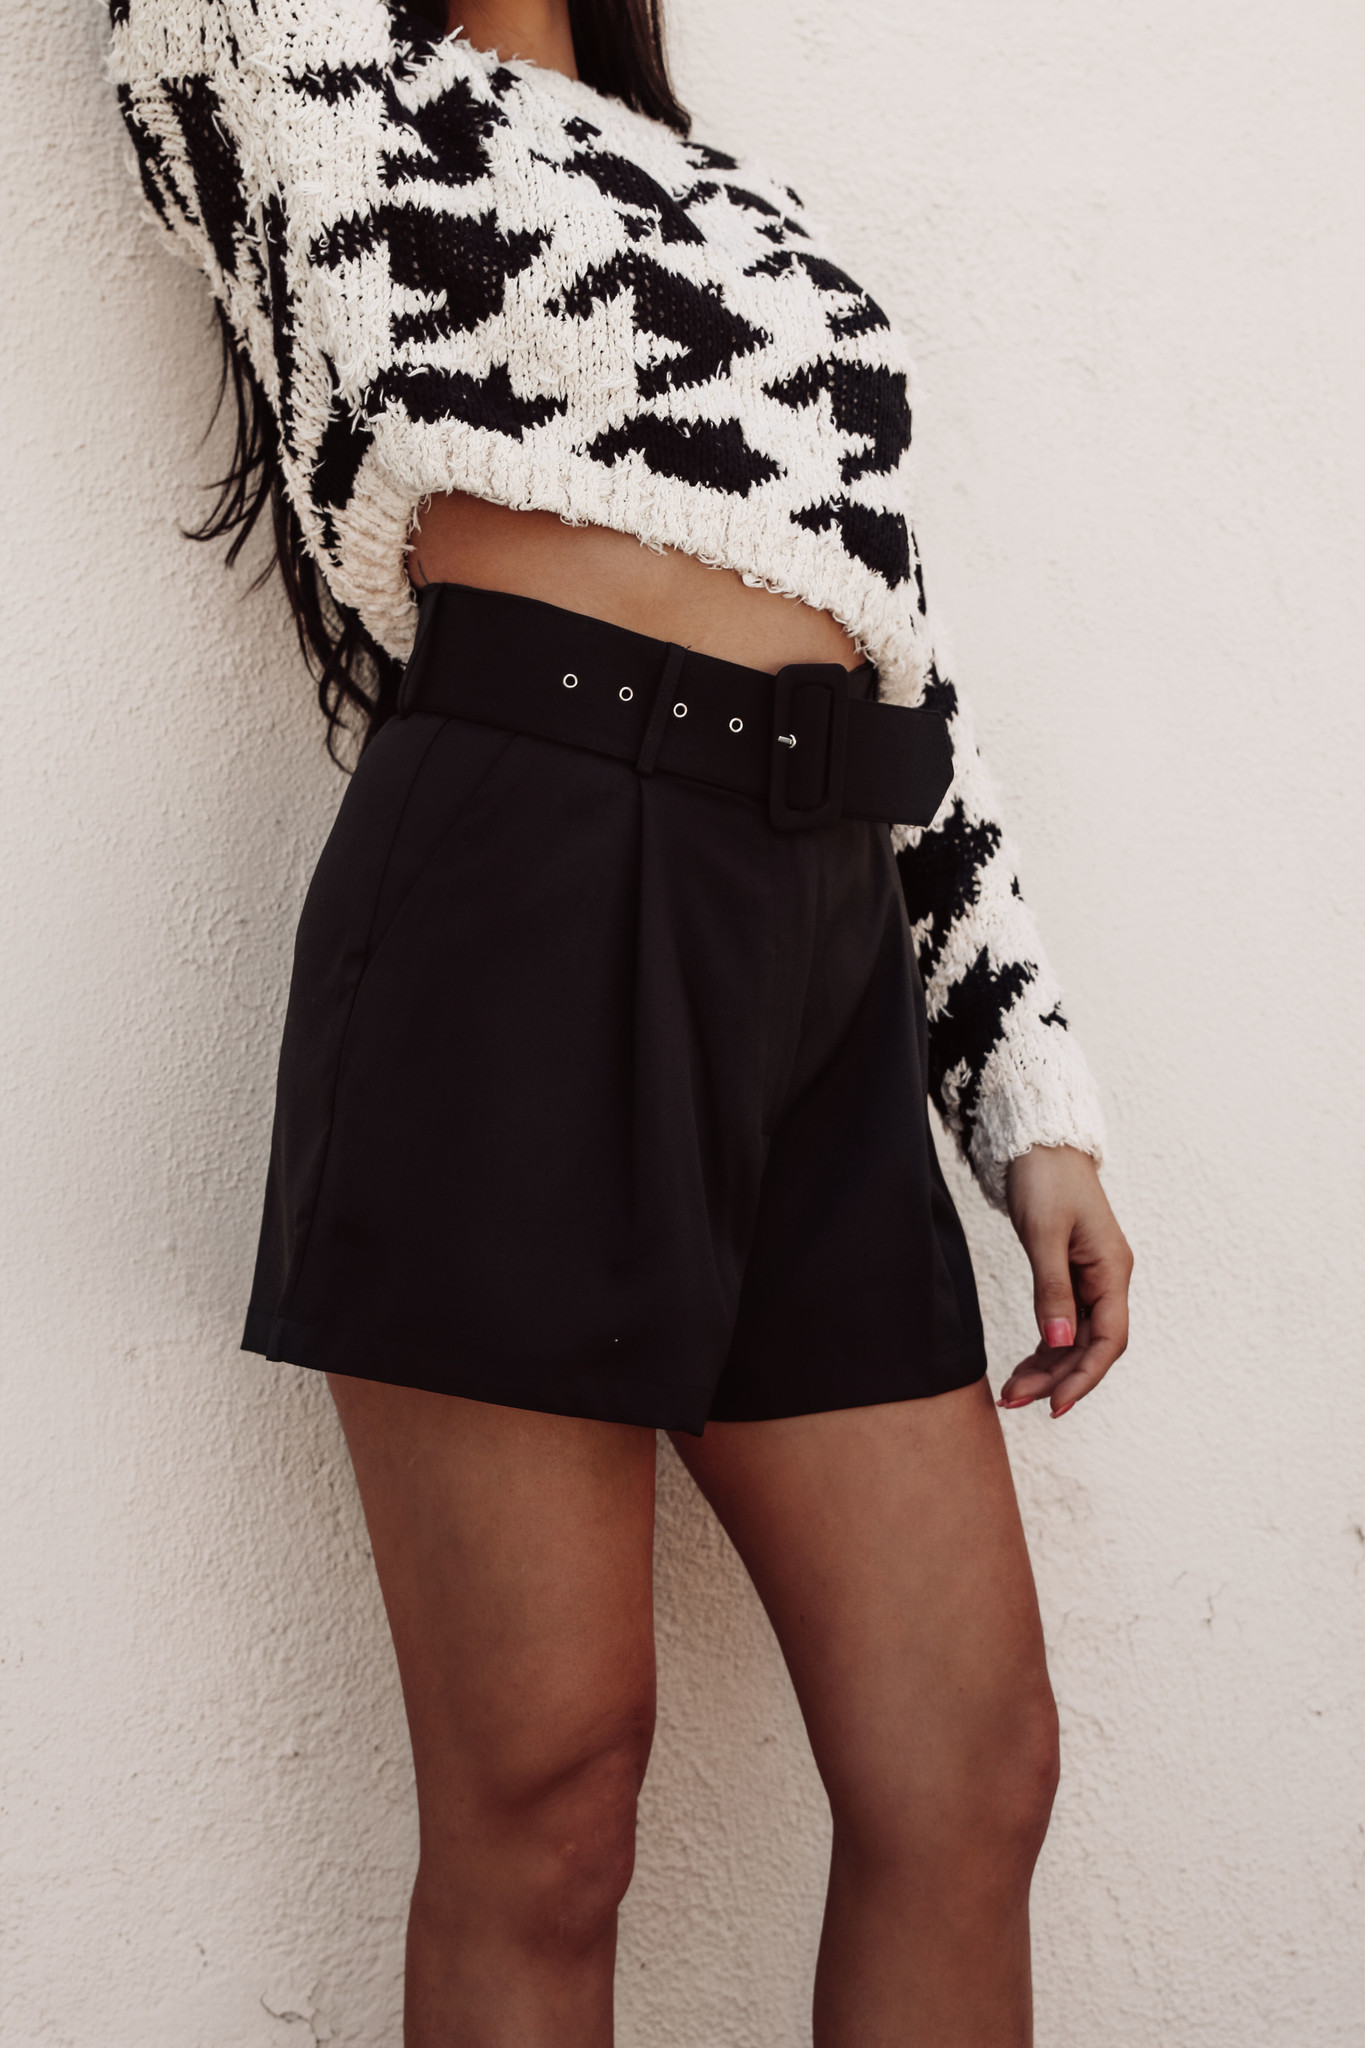 LEXI DREW 2137 Belted Shorts